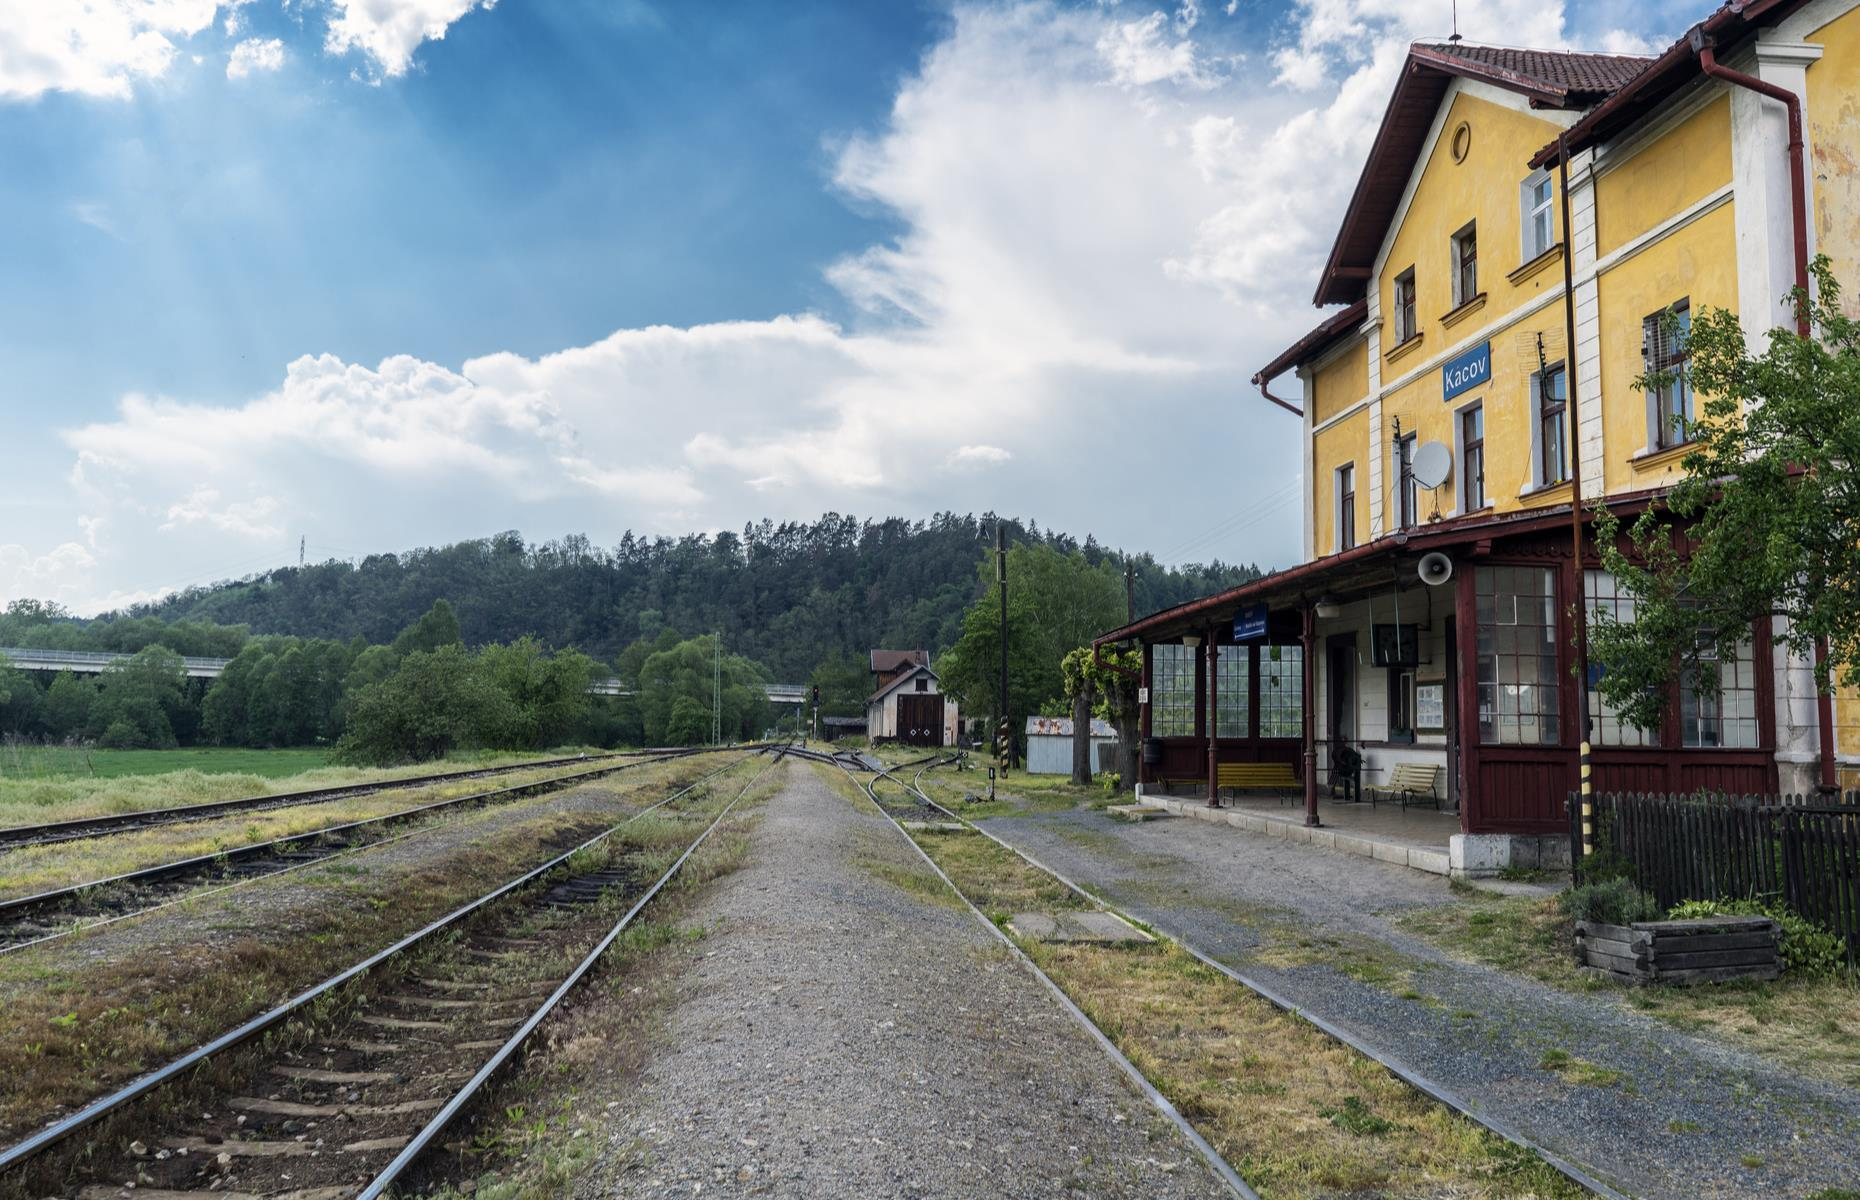 Slide 9 of 33: This picturesque railway station can be seen in the small town of Kácov in Czech Republic's Central Bohemia region. Though abandoned and neglected, the disused station building has plenty of charm. It has even been used as a filming location for movies such as the 2001 Czech drama Dark Blue World.